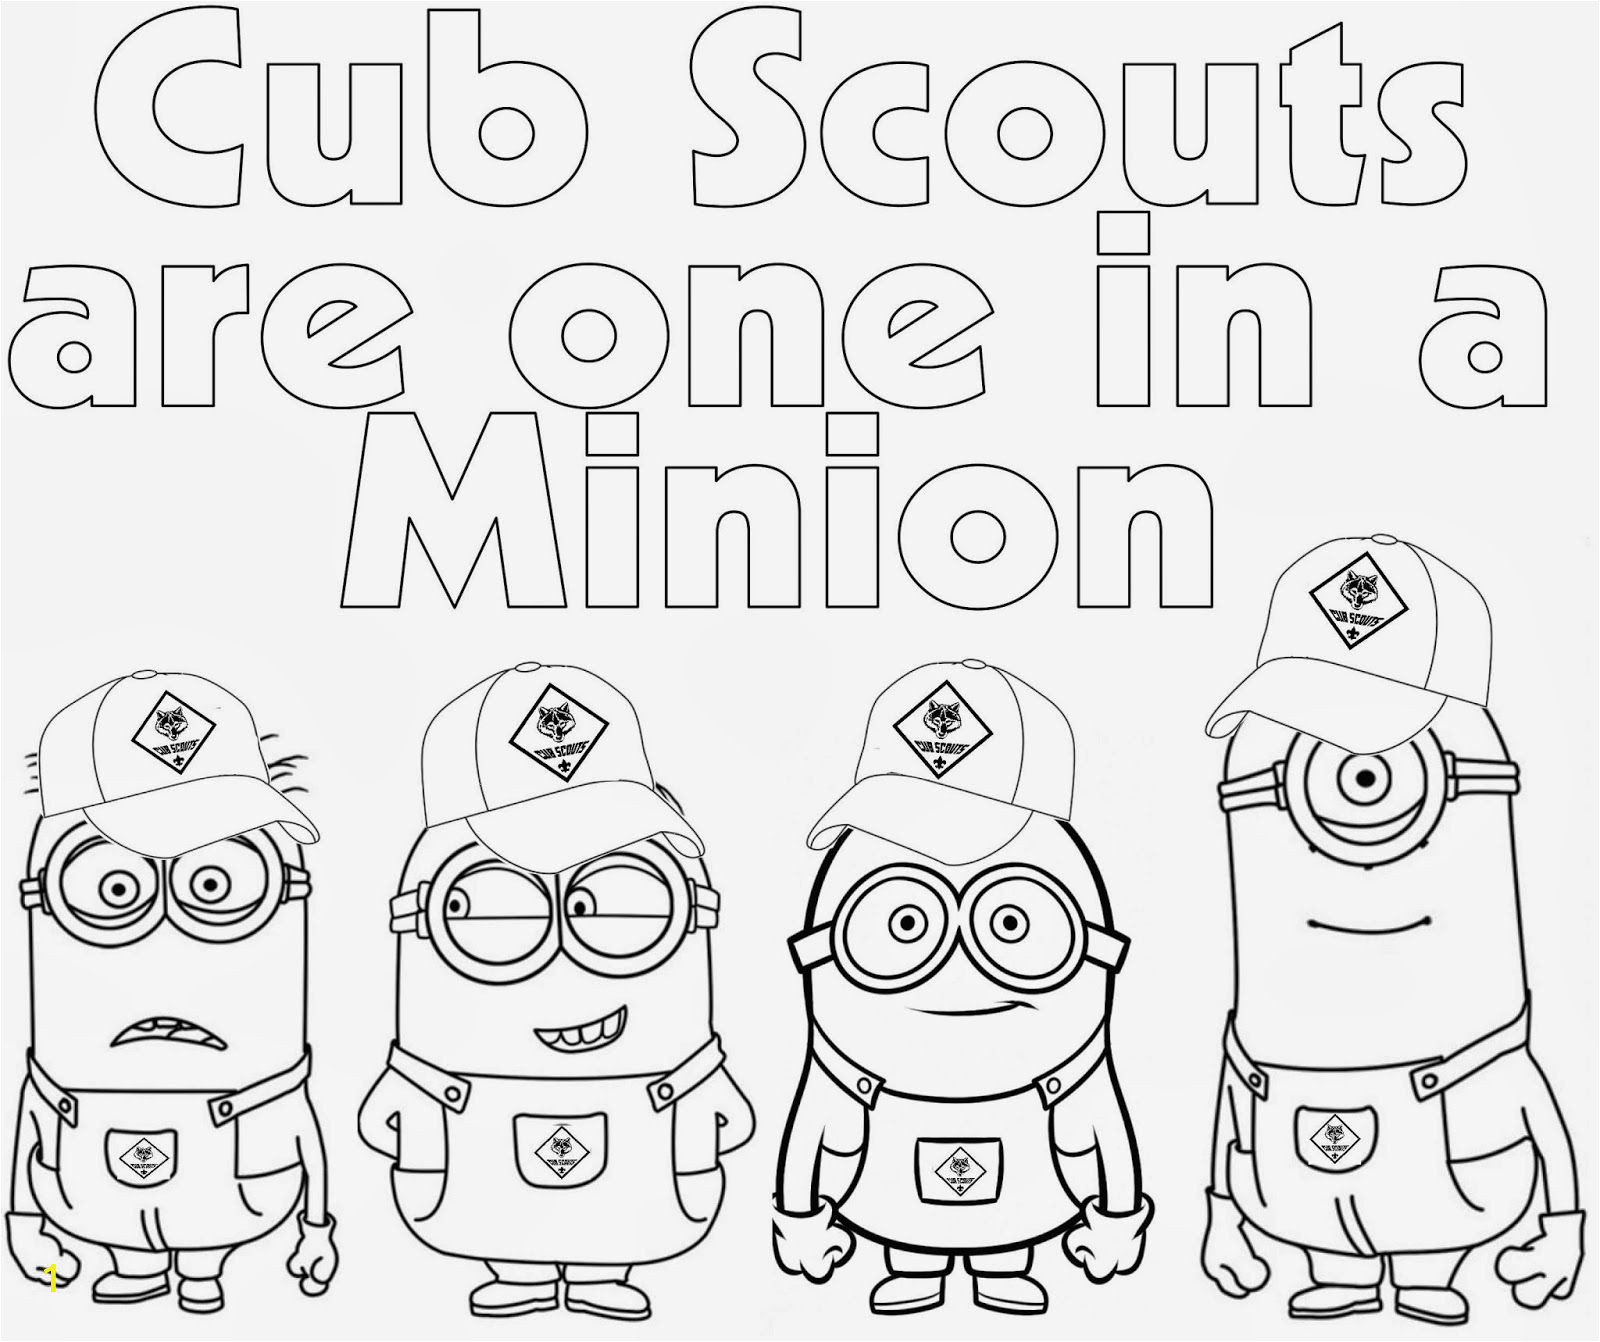 Cub Scout Printable Coloring Pages Pin On Cub Scout Ideas